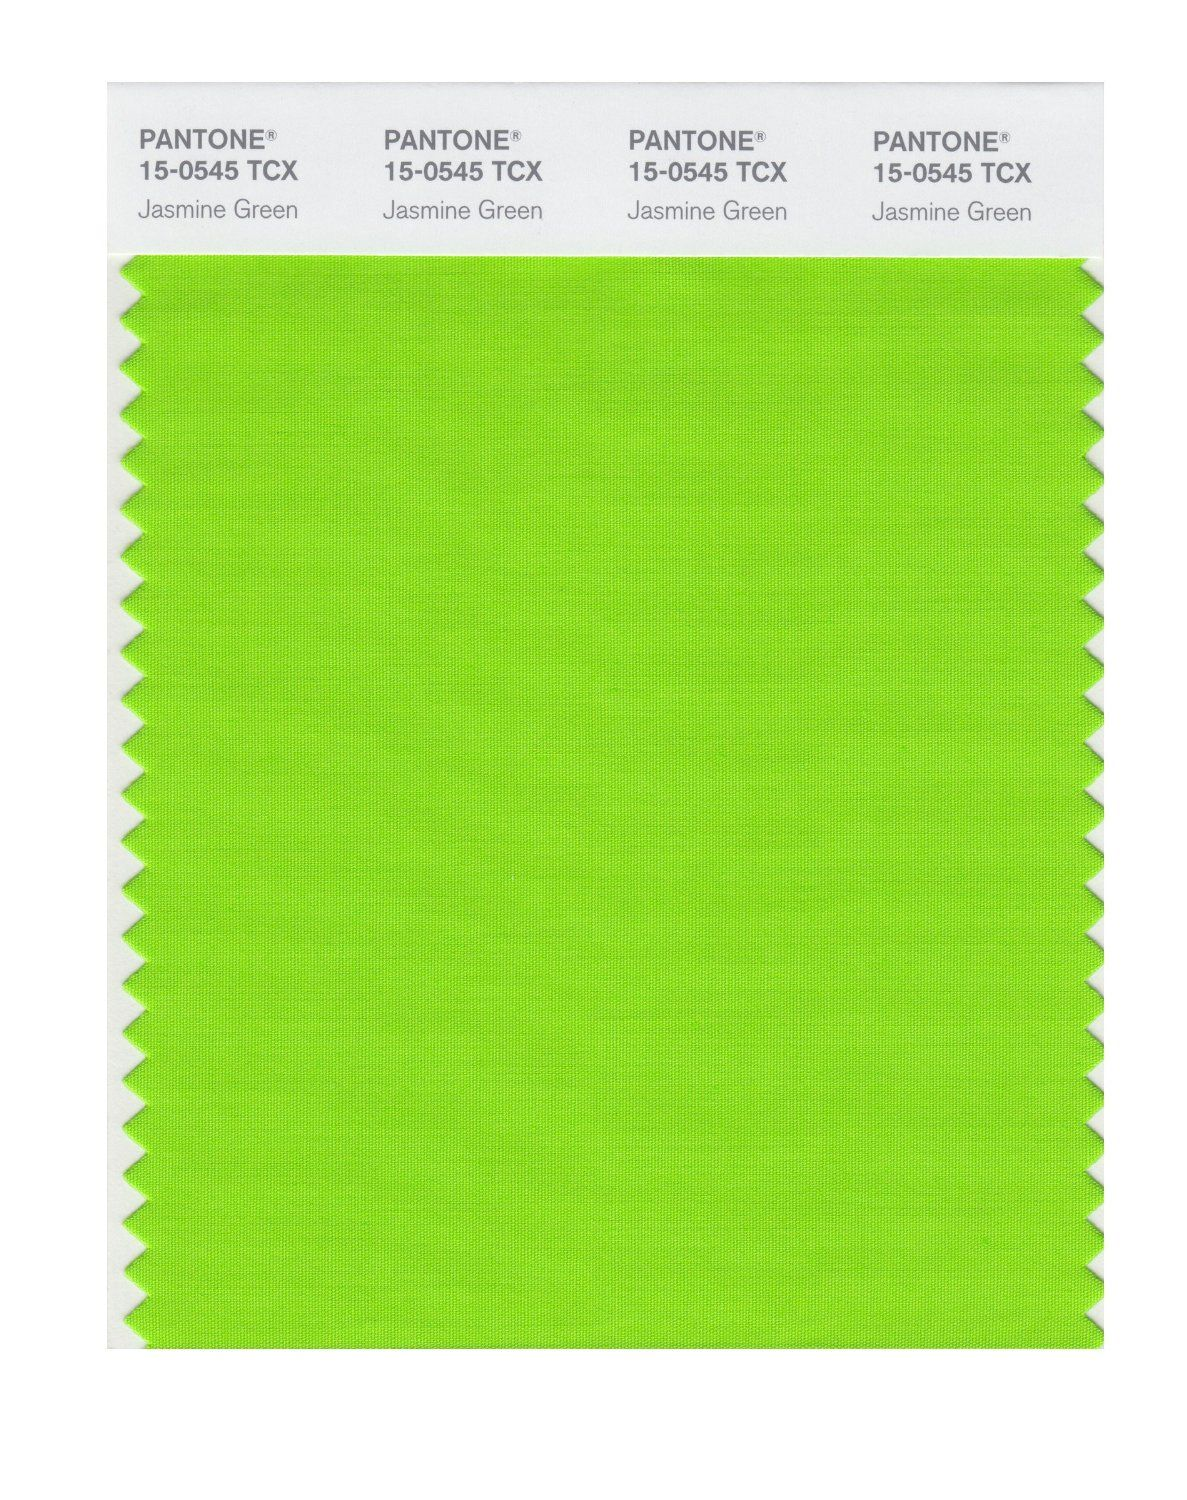 Pantone Grün Pantone Smart 15-0000x Color Swatch Card, Dove - Amazon.com | Pantone, Color Swatch, Swatch